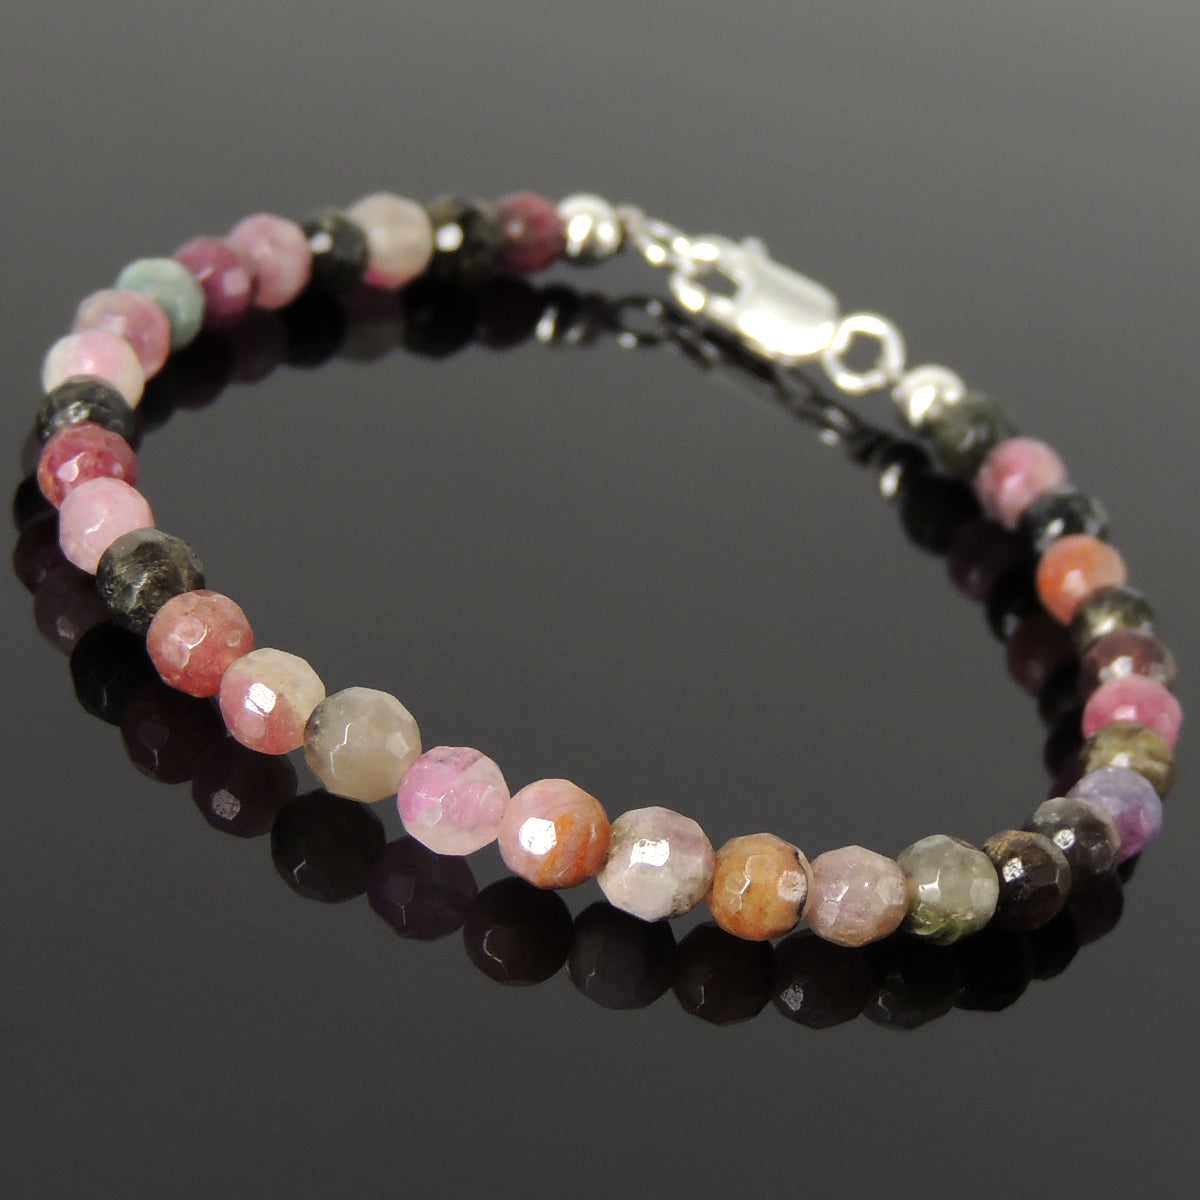 5mm Faceted Tourmaline Healing Gemstone Bracelet with S925 Sterling Silver Spacer Beads & Clasp - Handmade by Gem & Silver BR1193